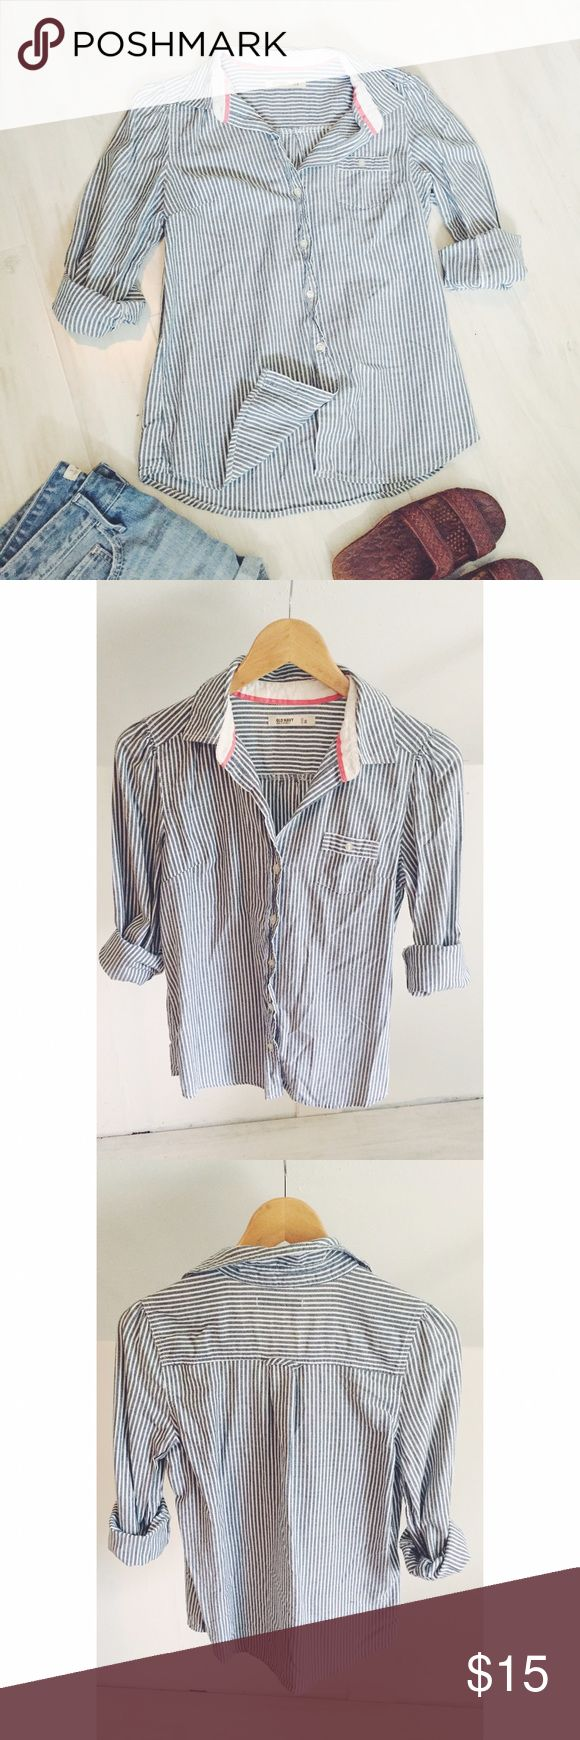 Old Navy Nautical Stripe Button Down Shirt This shirt is perfect paired with jean shorts and sandals, over a swimsuit or tucked in with floral skirt and wedges!  Lightweight and a beautiful white and grey/blue color palette. Gently used. Great condition. Old Navy Tops Button Down Shirts